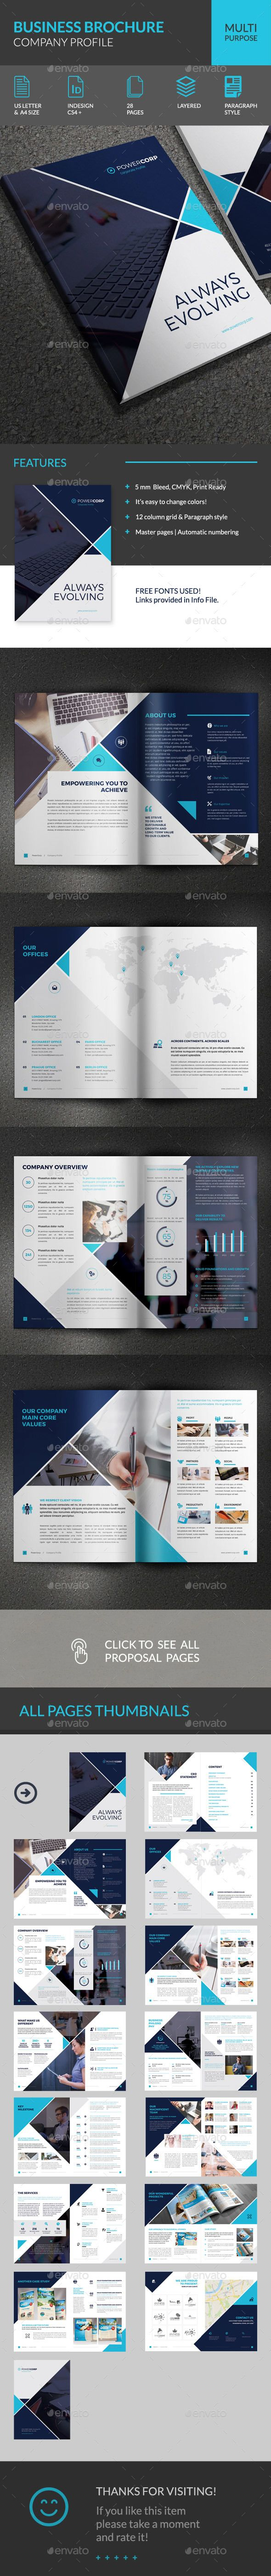 PowerCorp Business Brochure Corporate Profile – Corporate Profile Template